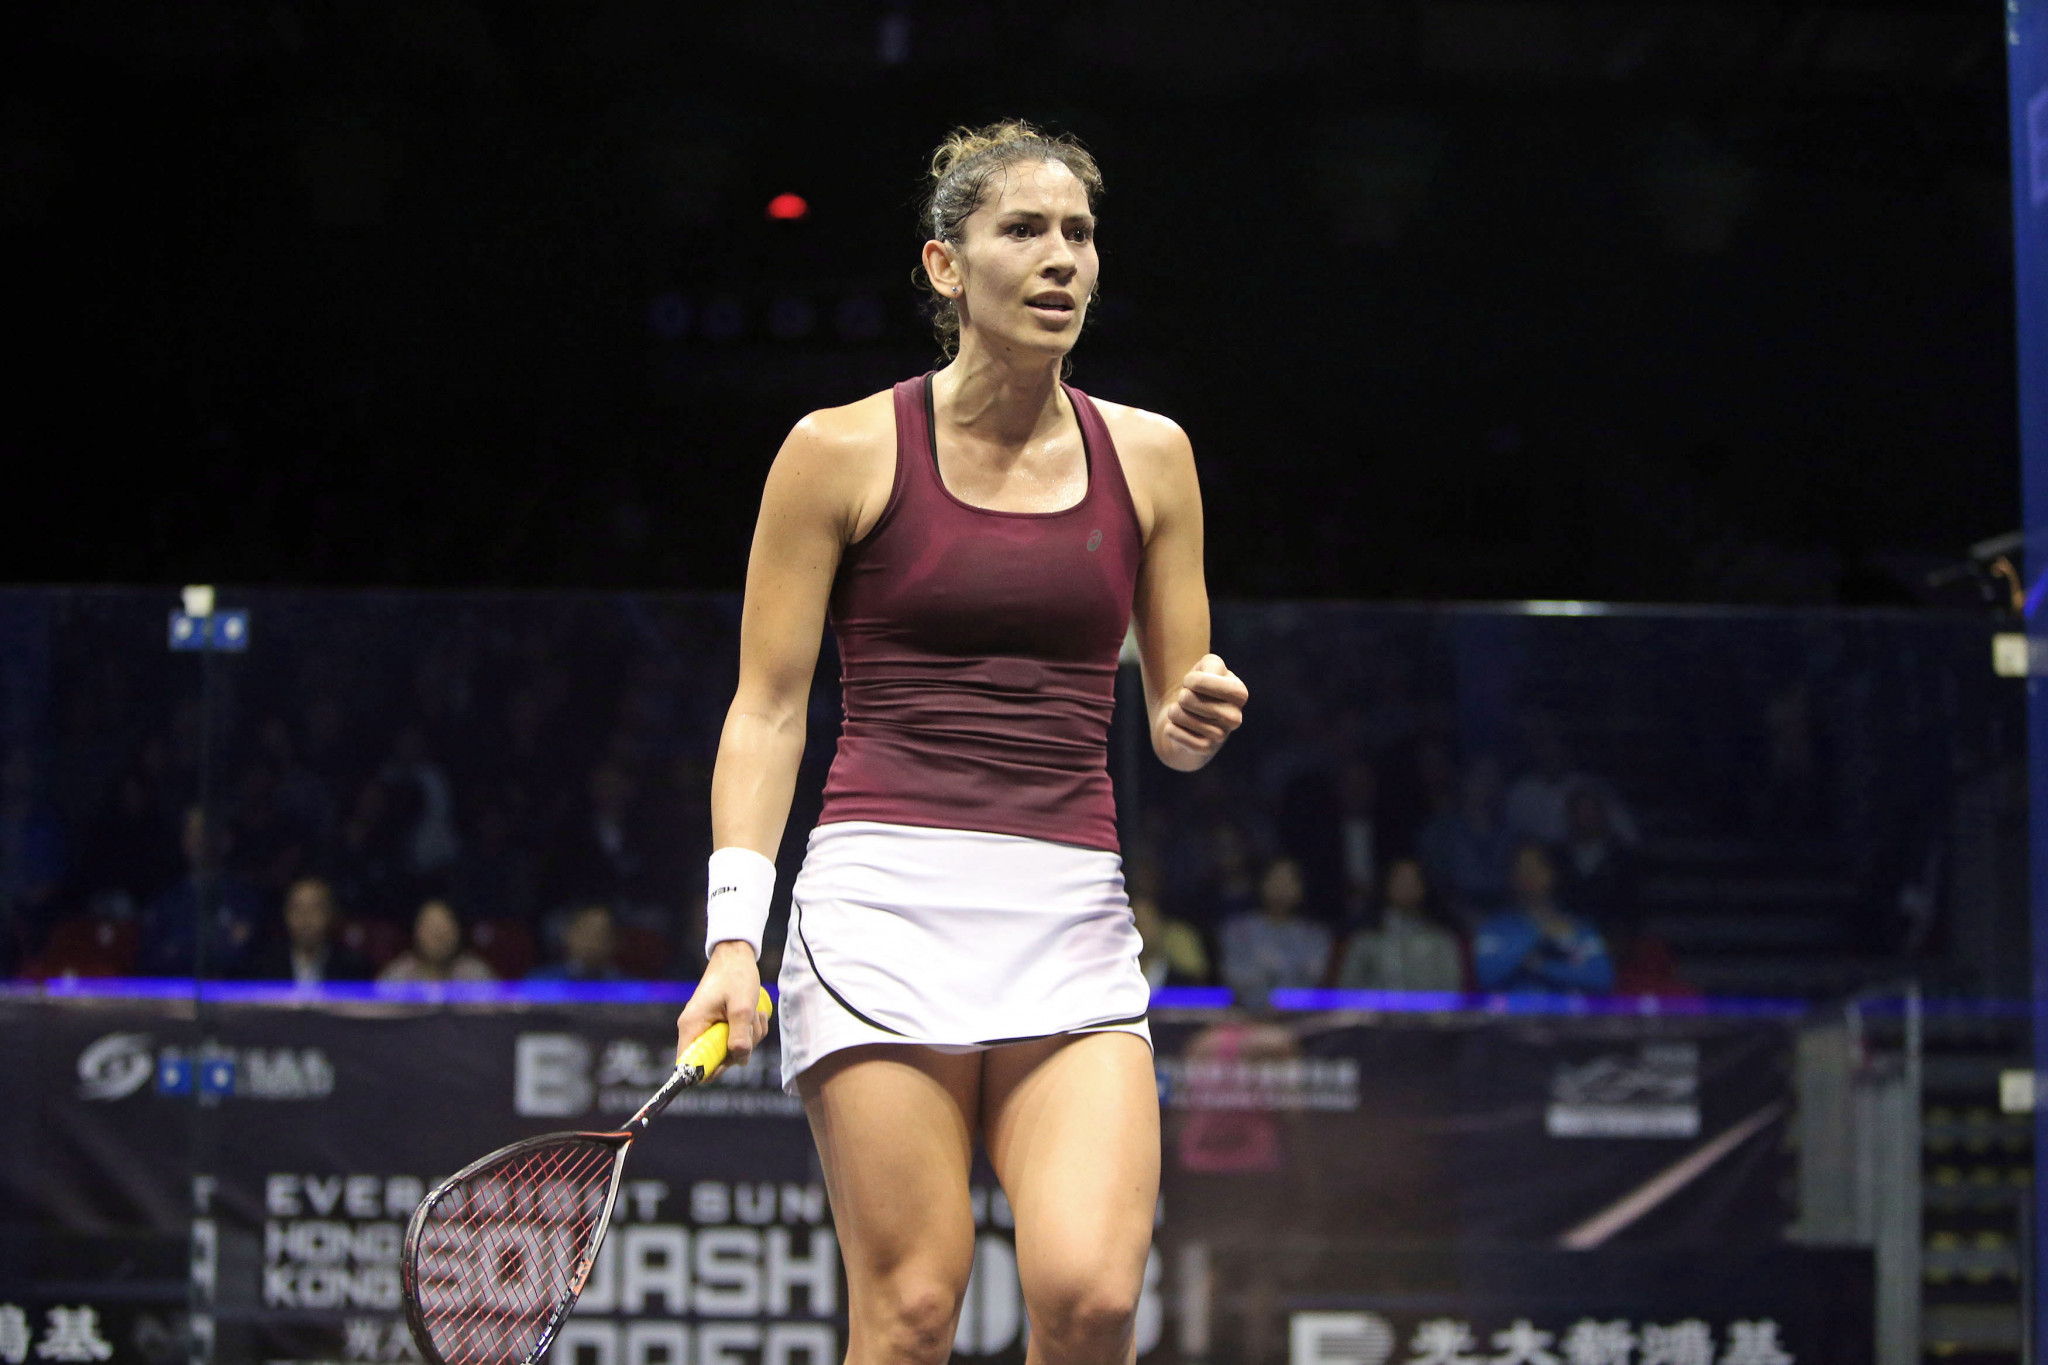 King beats Perry to reach women's final at PSA Hong Kong Open